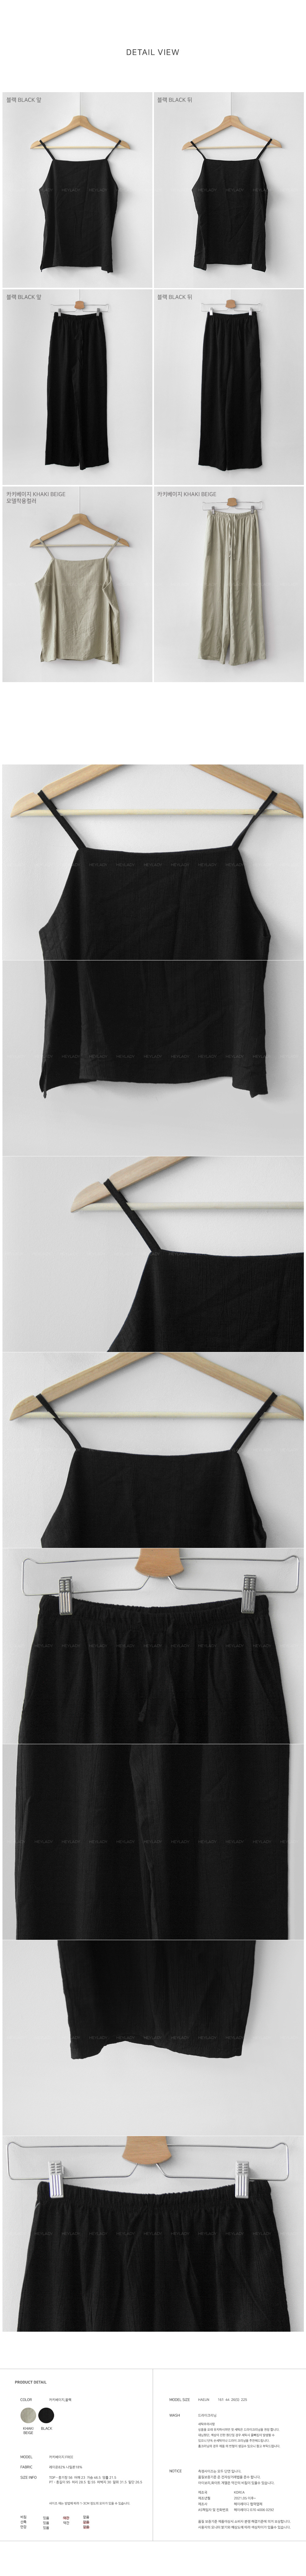 Bevilly Sleeveless Two-Piece